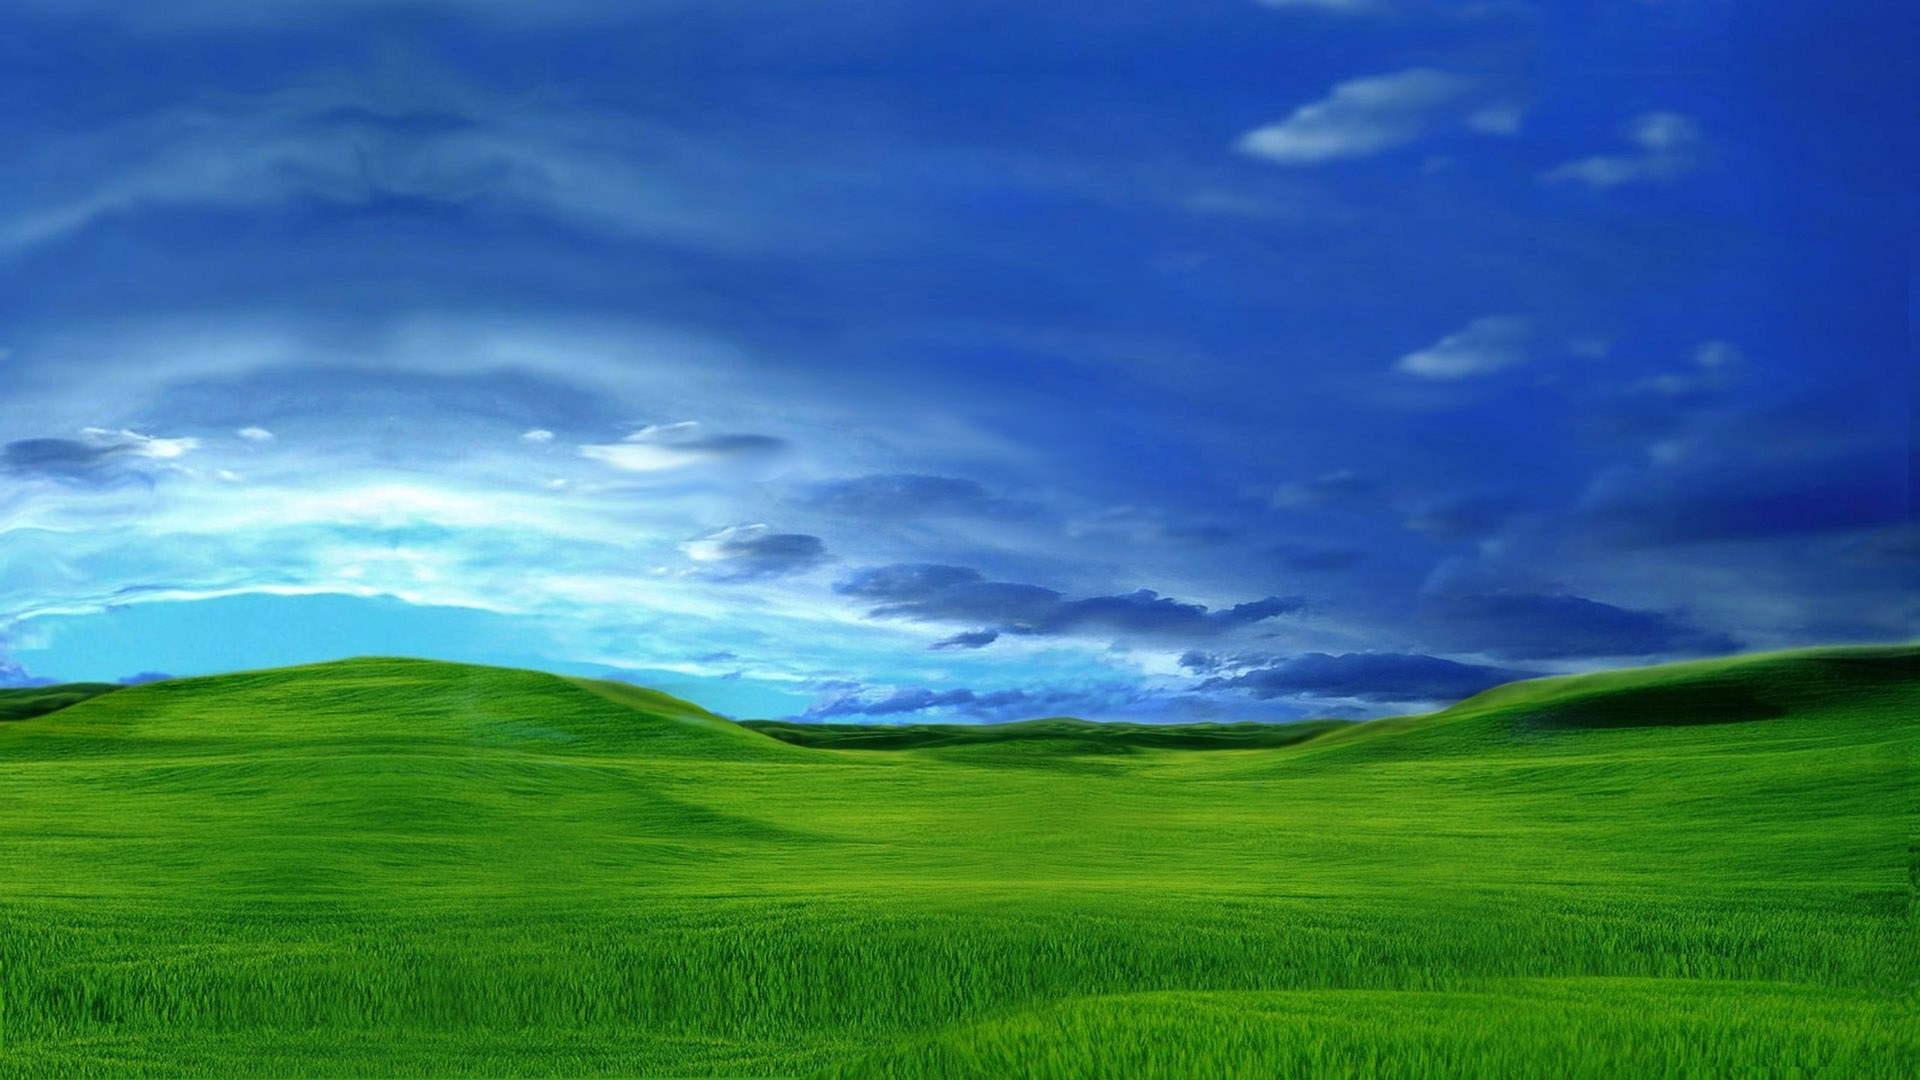 1920x1080 For 1080p Widescreen LCD Monitor - HD beautiful landscape 第5  Wallpaper